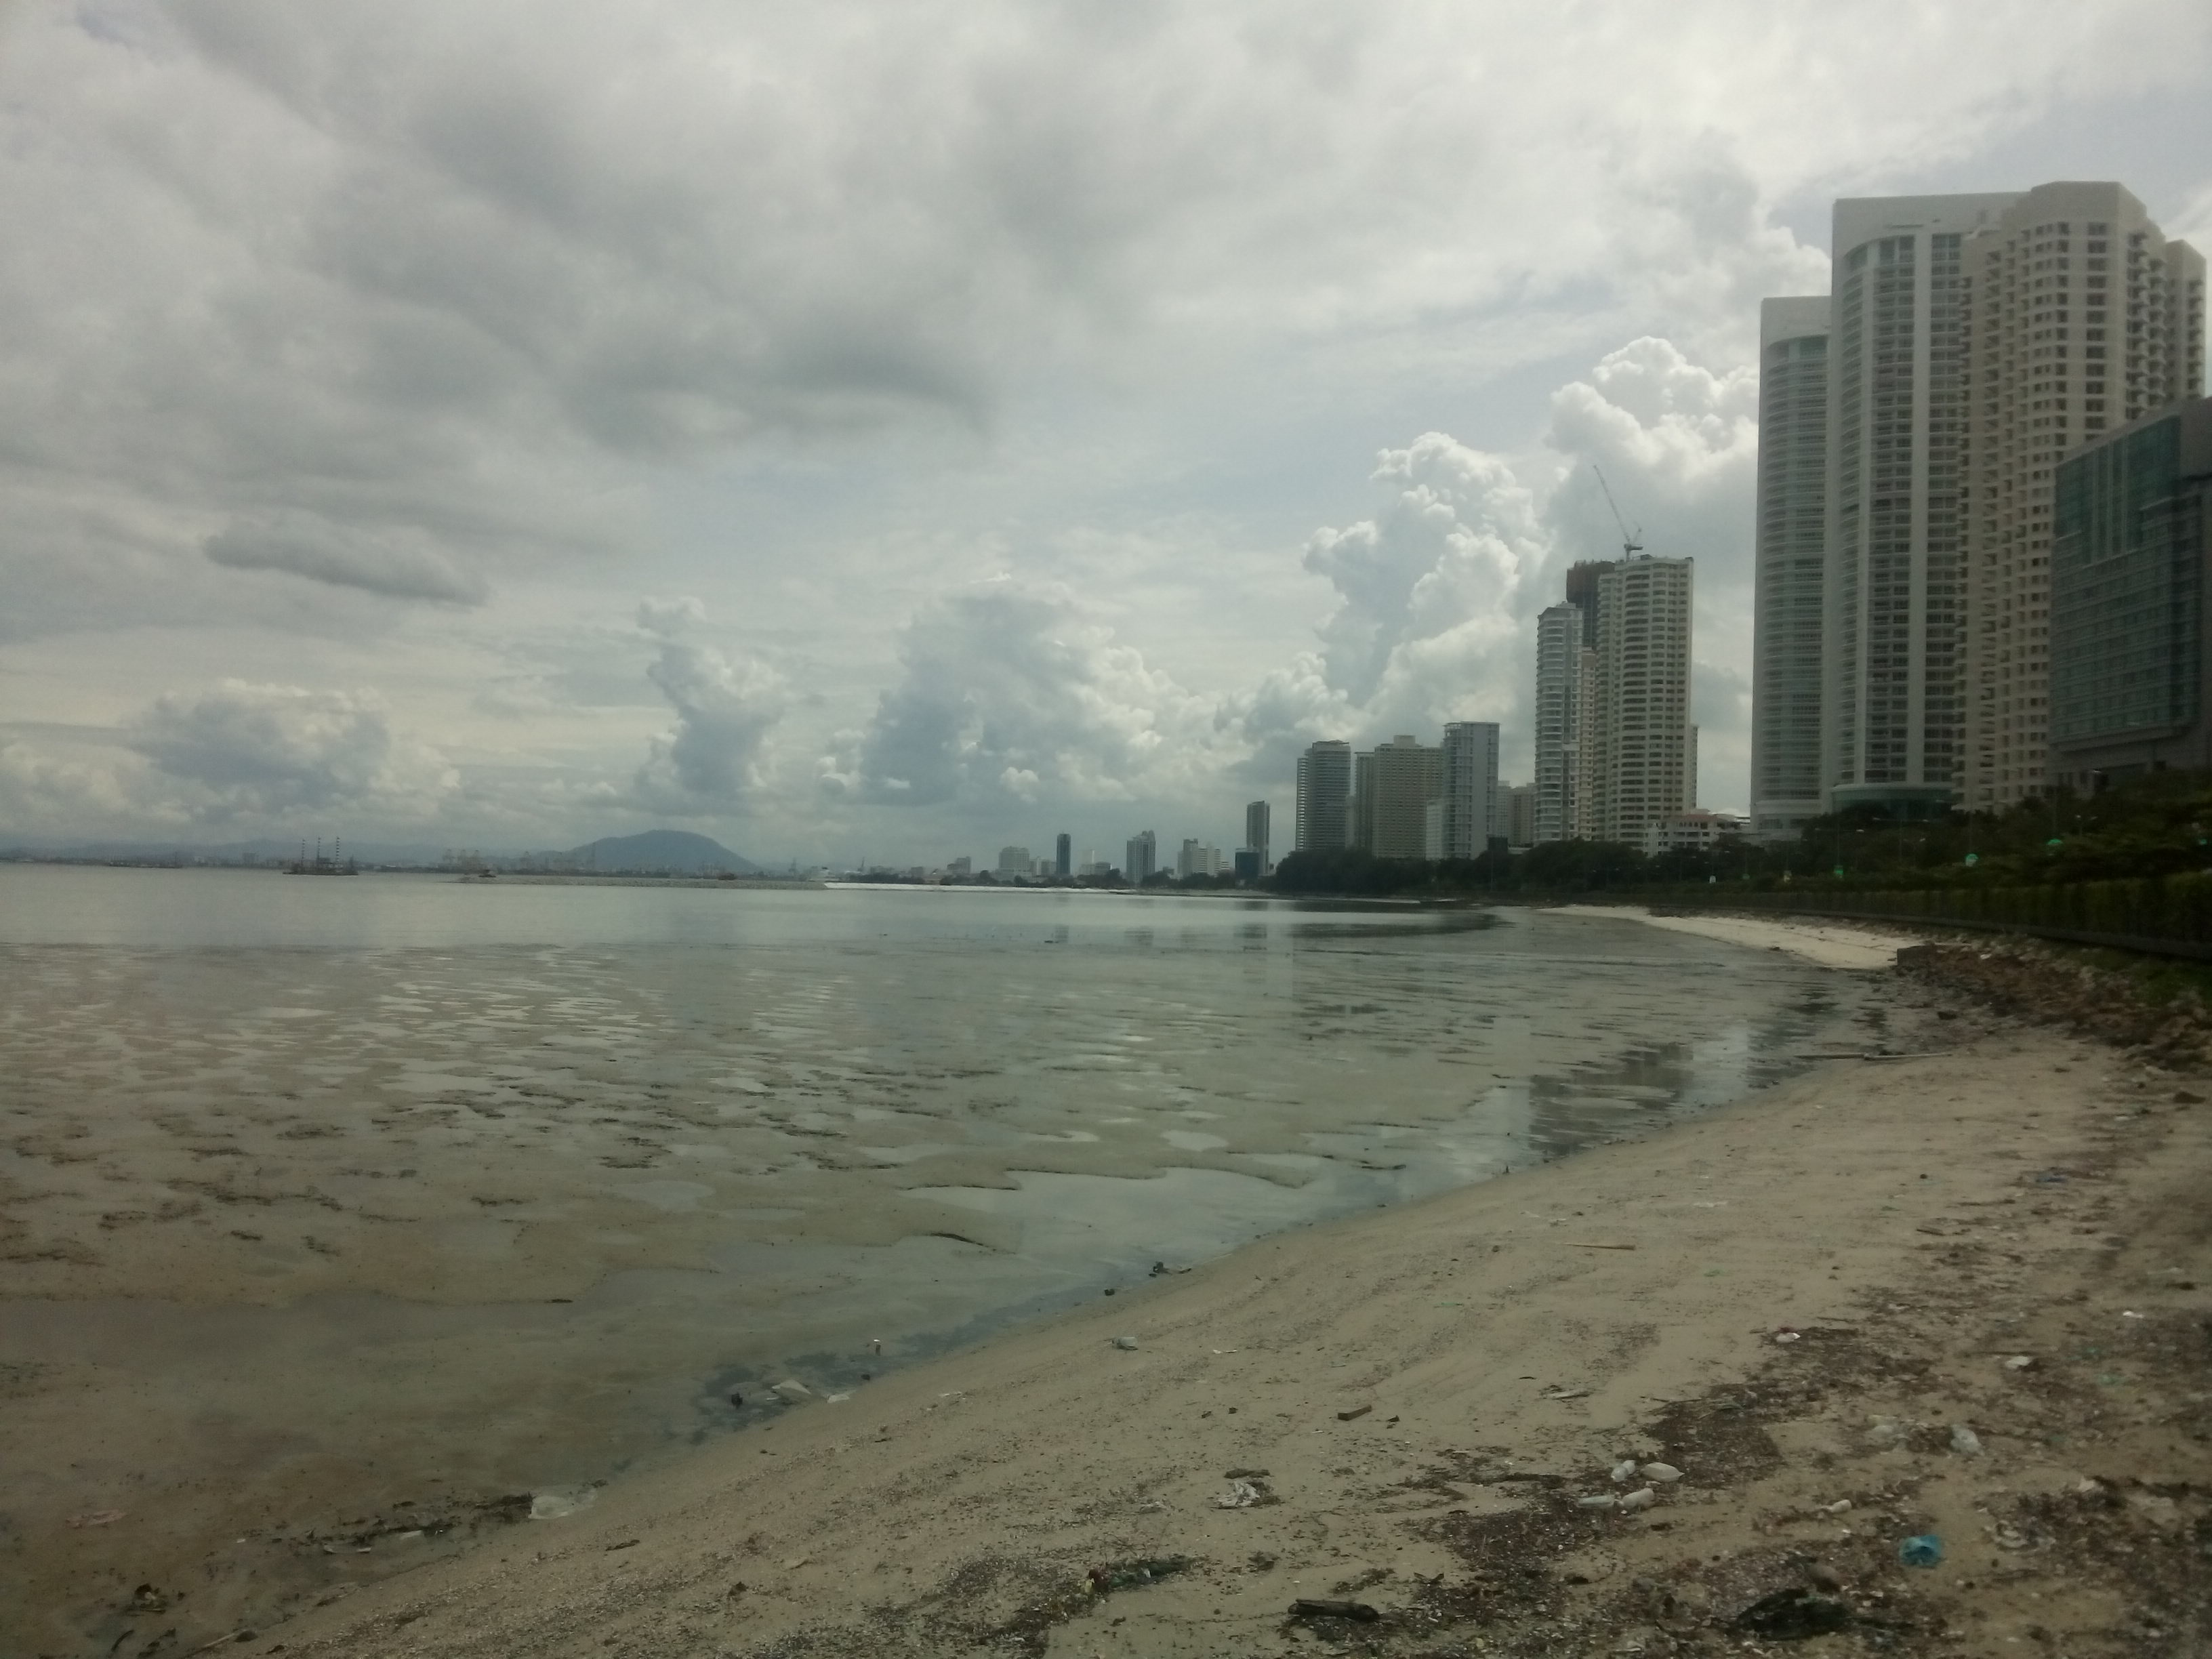 A view across the sea, with sand in the foreground and condos on the right